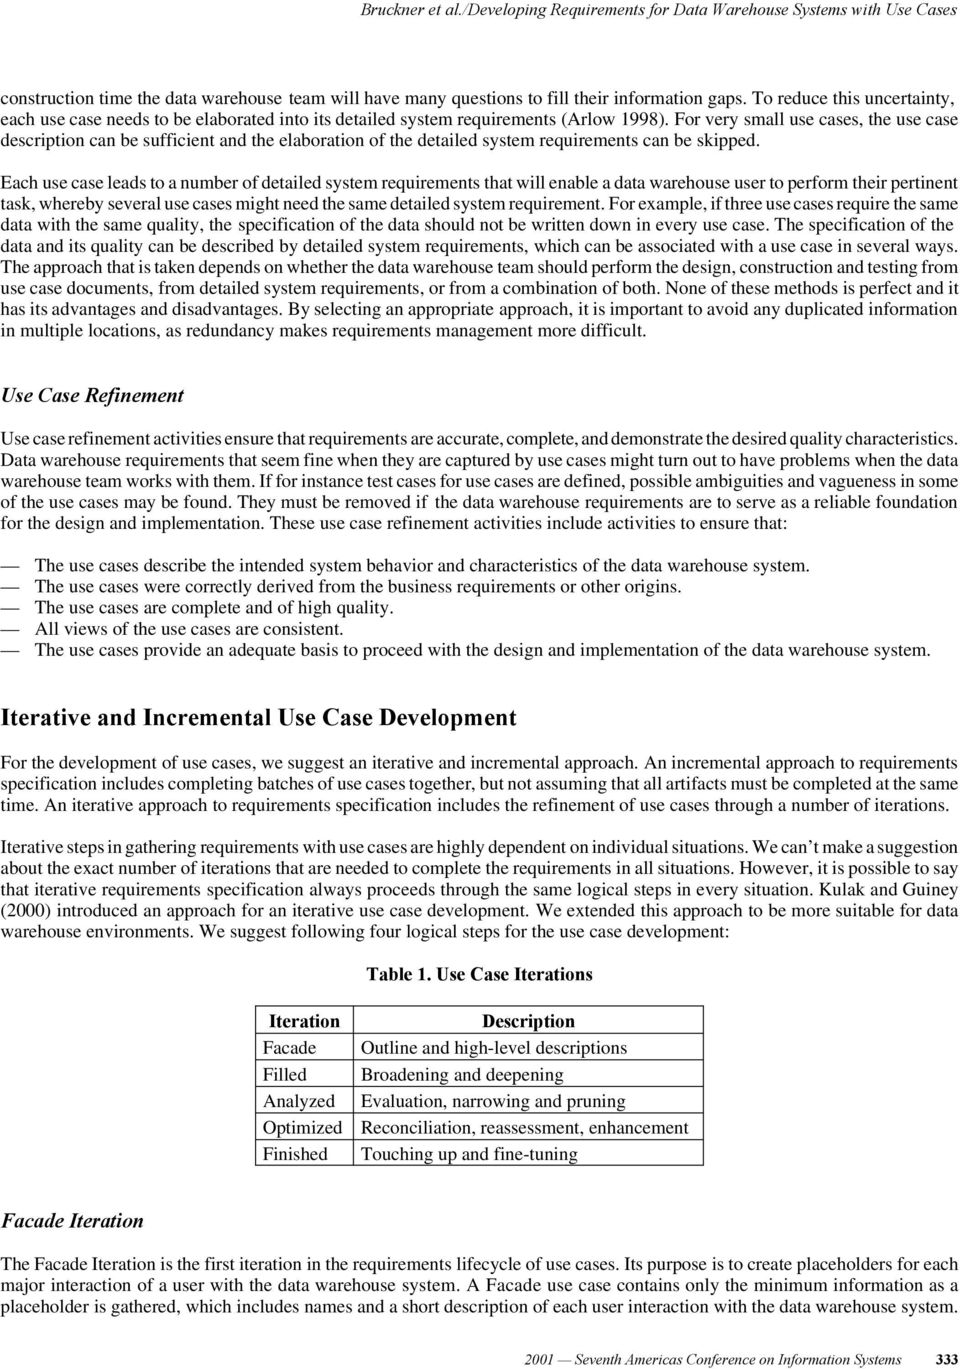 DEVELOPING REQUIREMENTS FOR DATA WAREHOUSE SYSTEMS WITH USE CASES - PDF